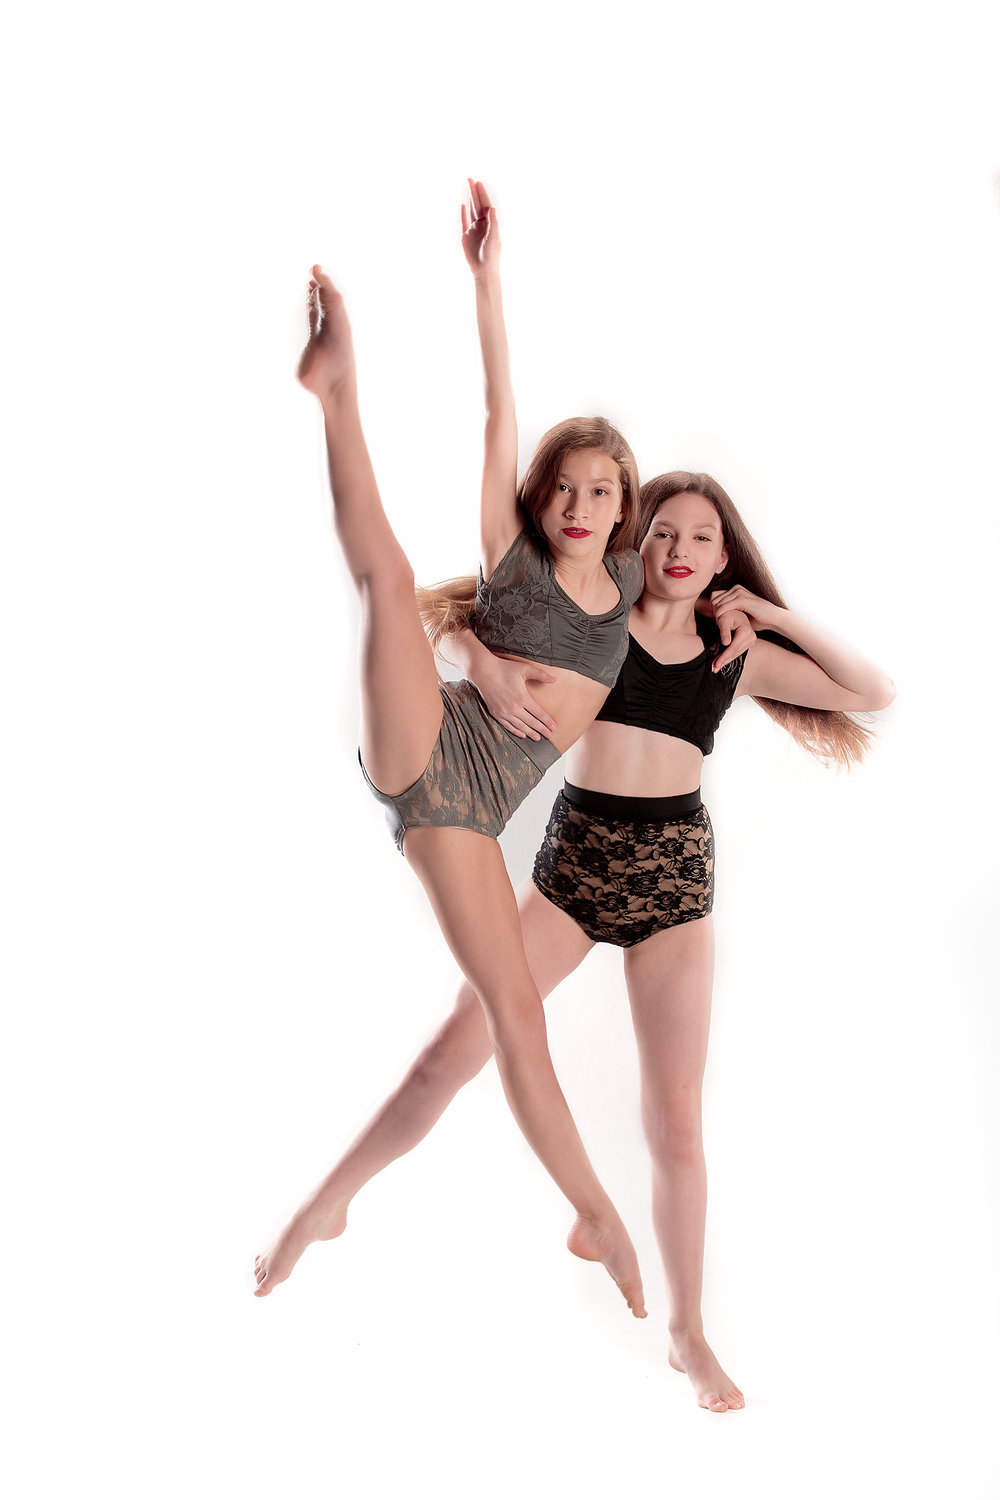 Best Dance Photographers - Professional Dance Photography